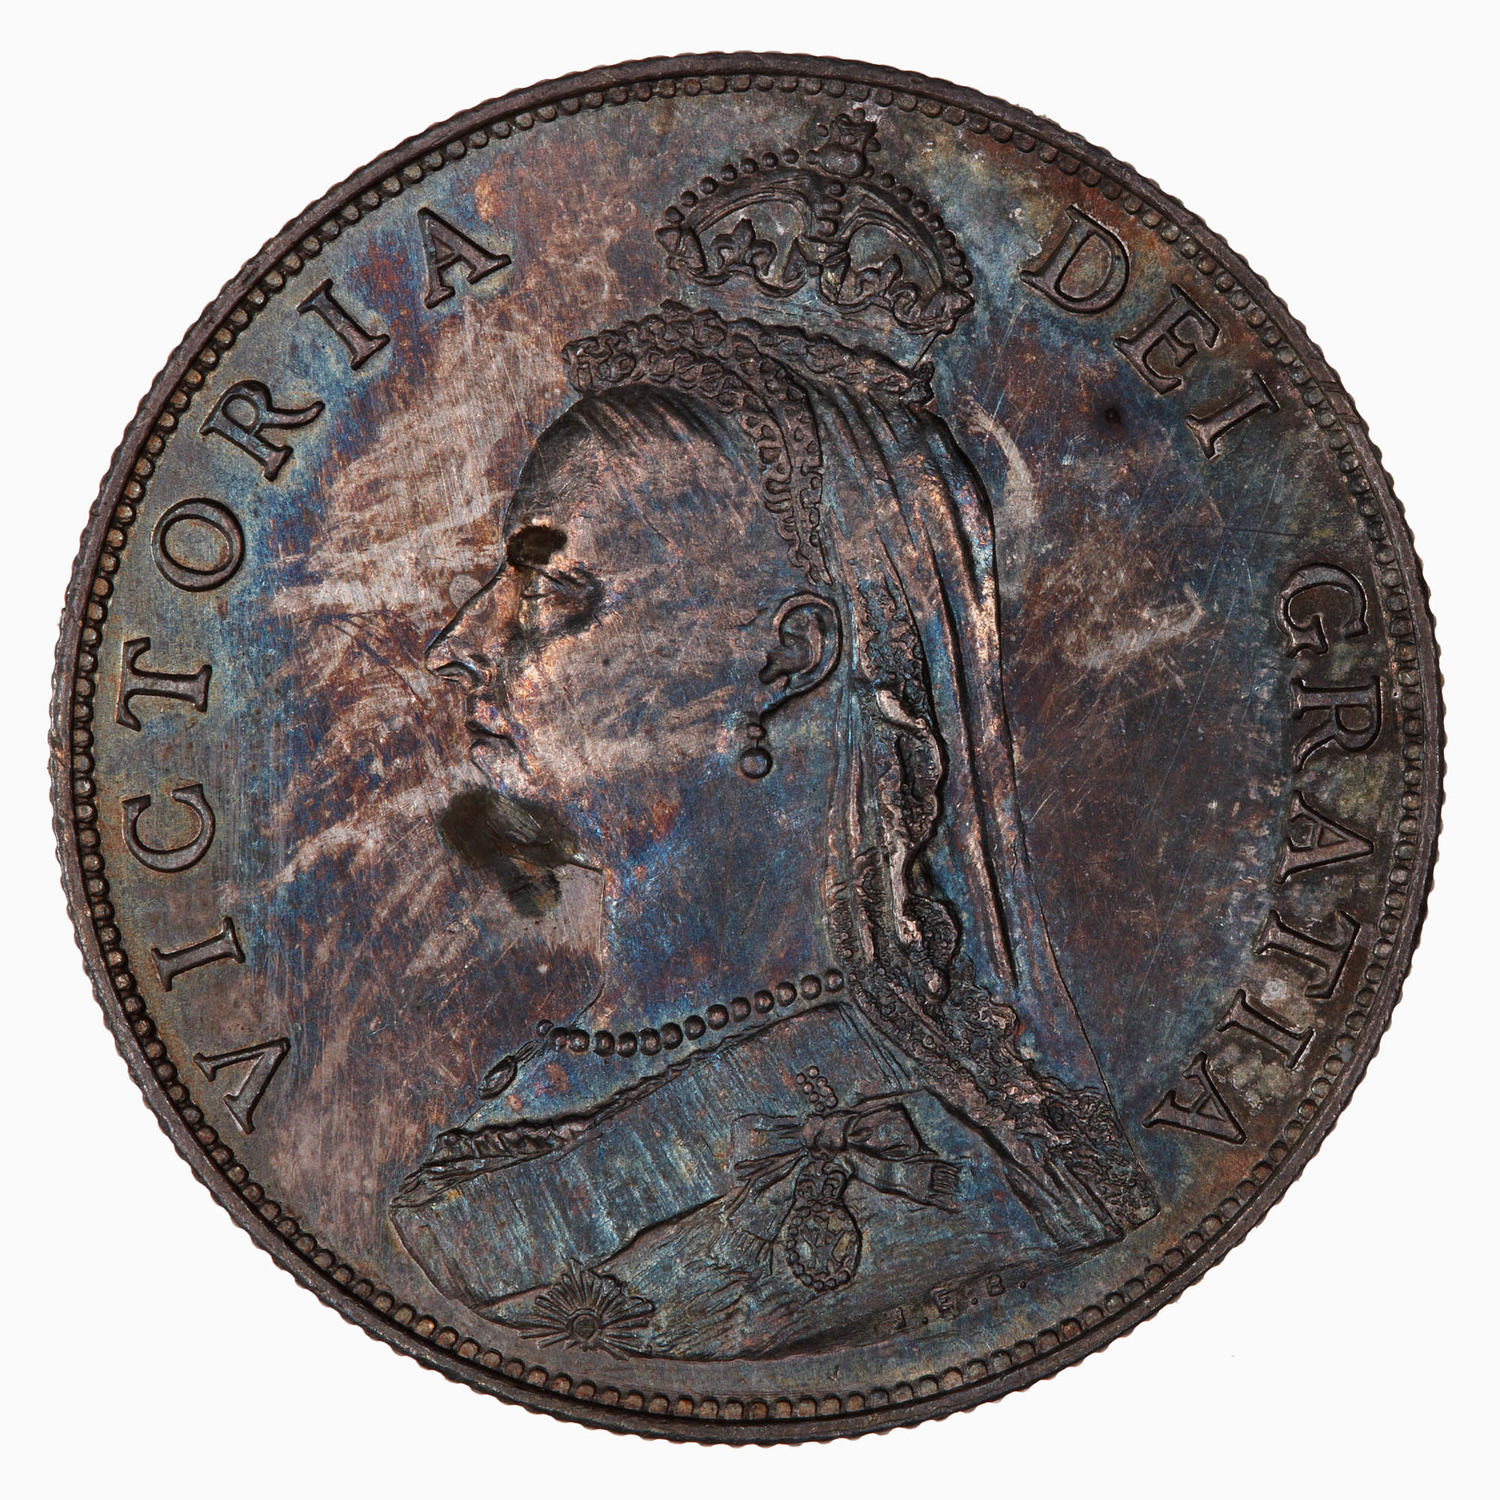 Florin 1887 Jubilee: Photo Coin - Florin, Queen Victoria, Great Britain, 1887